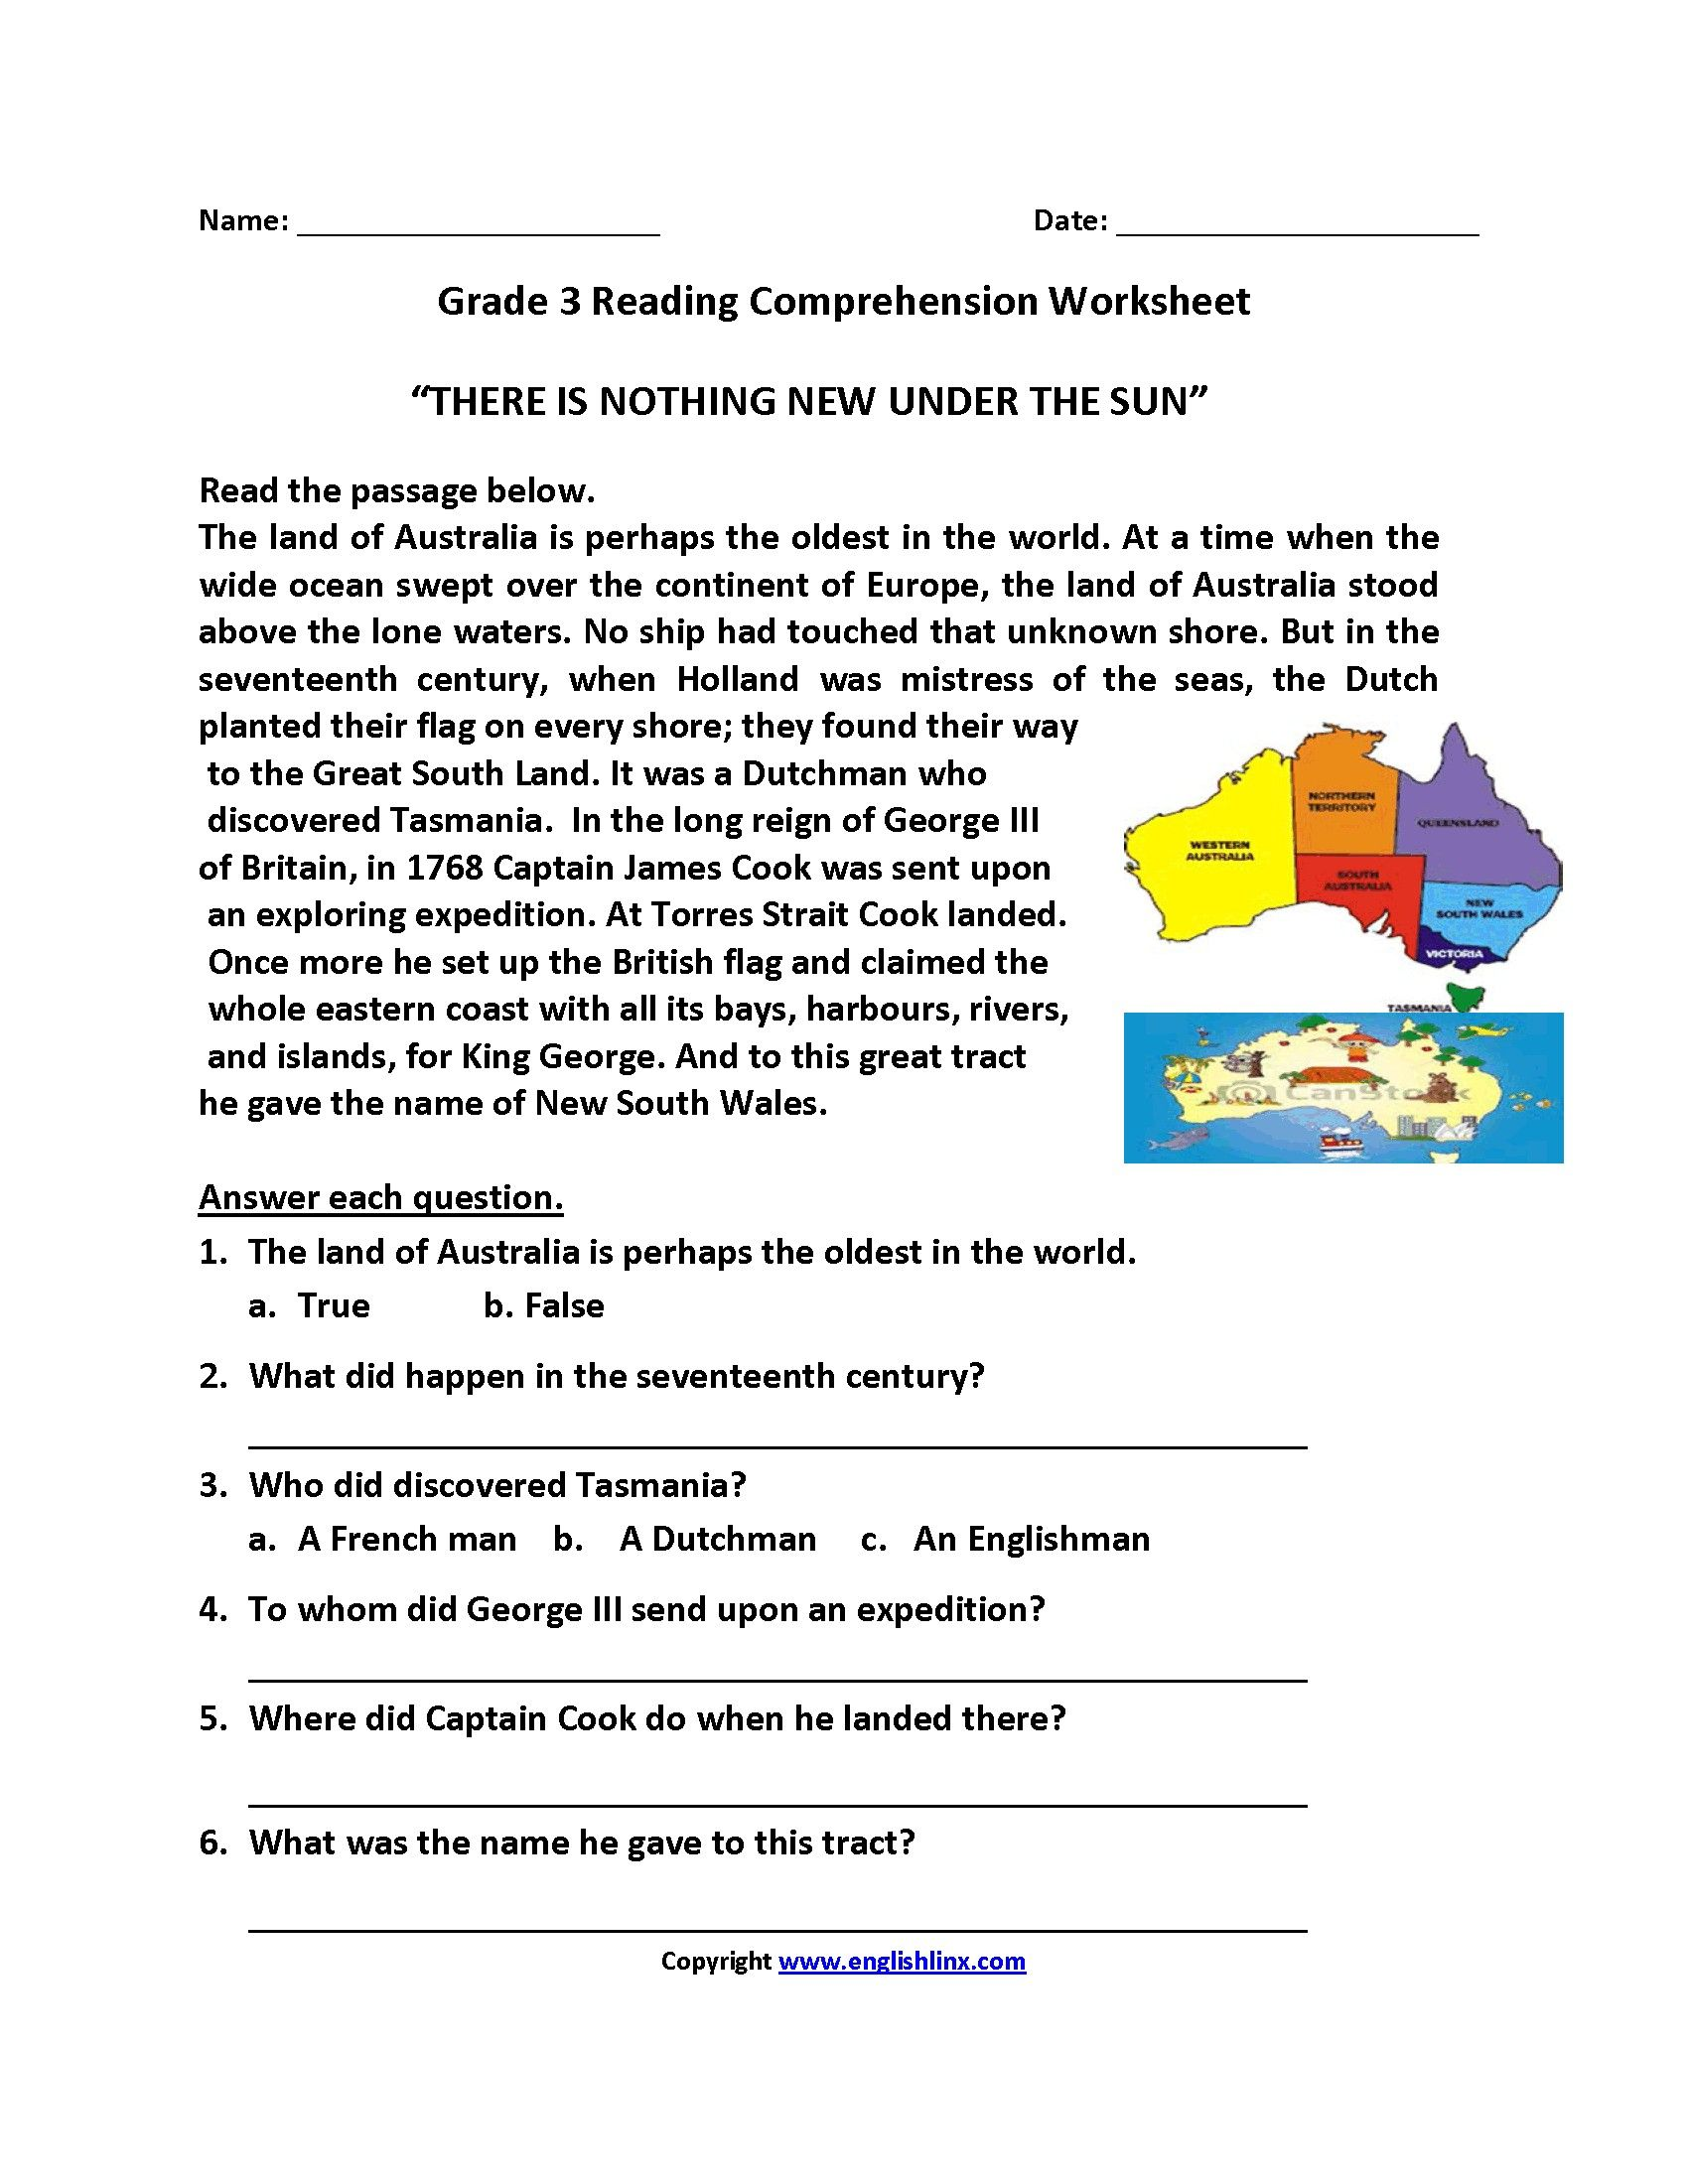 Judaism Reading Prehension Worksheet